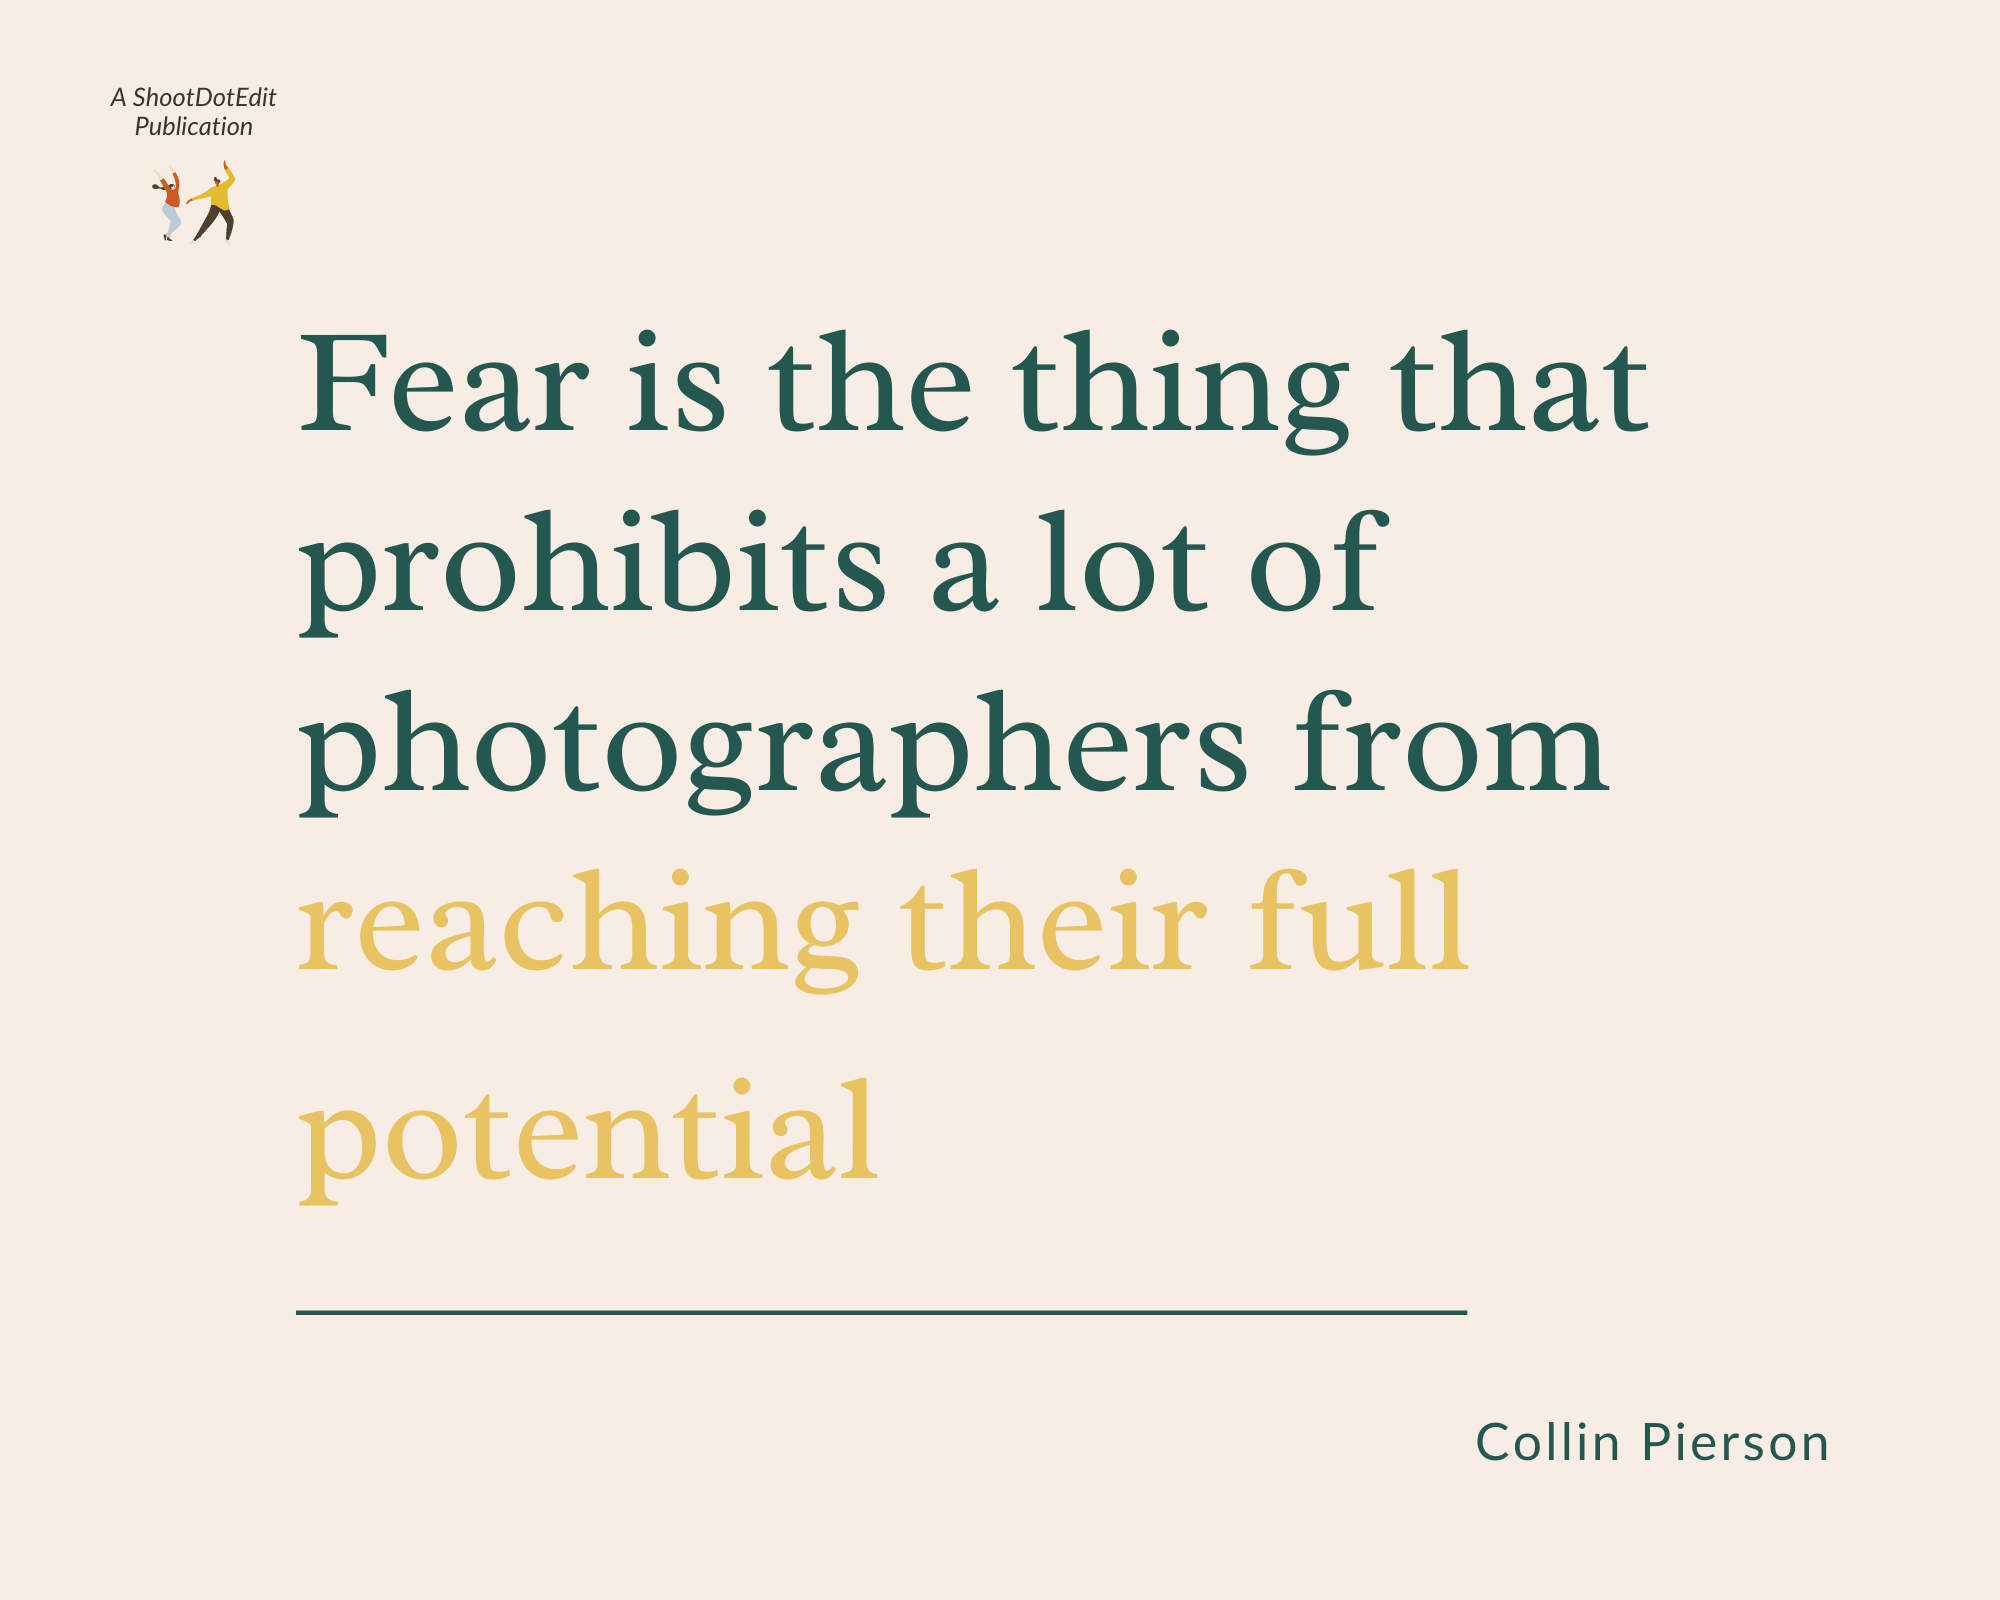 Infographic stating fear is the thing that prohibits a lot of photographers from reaching their full potential